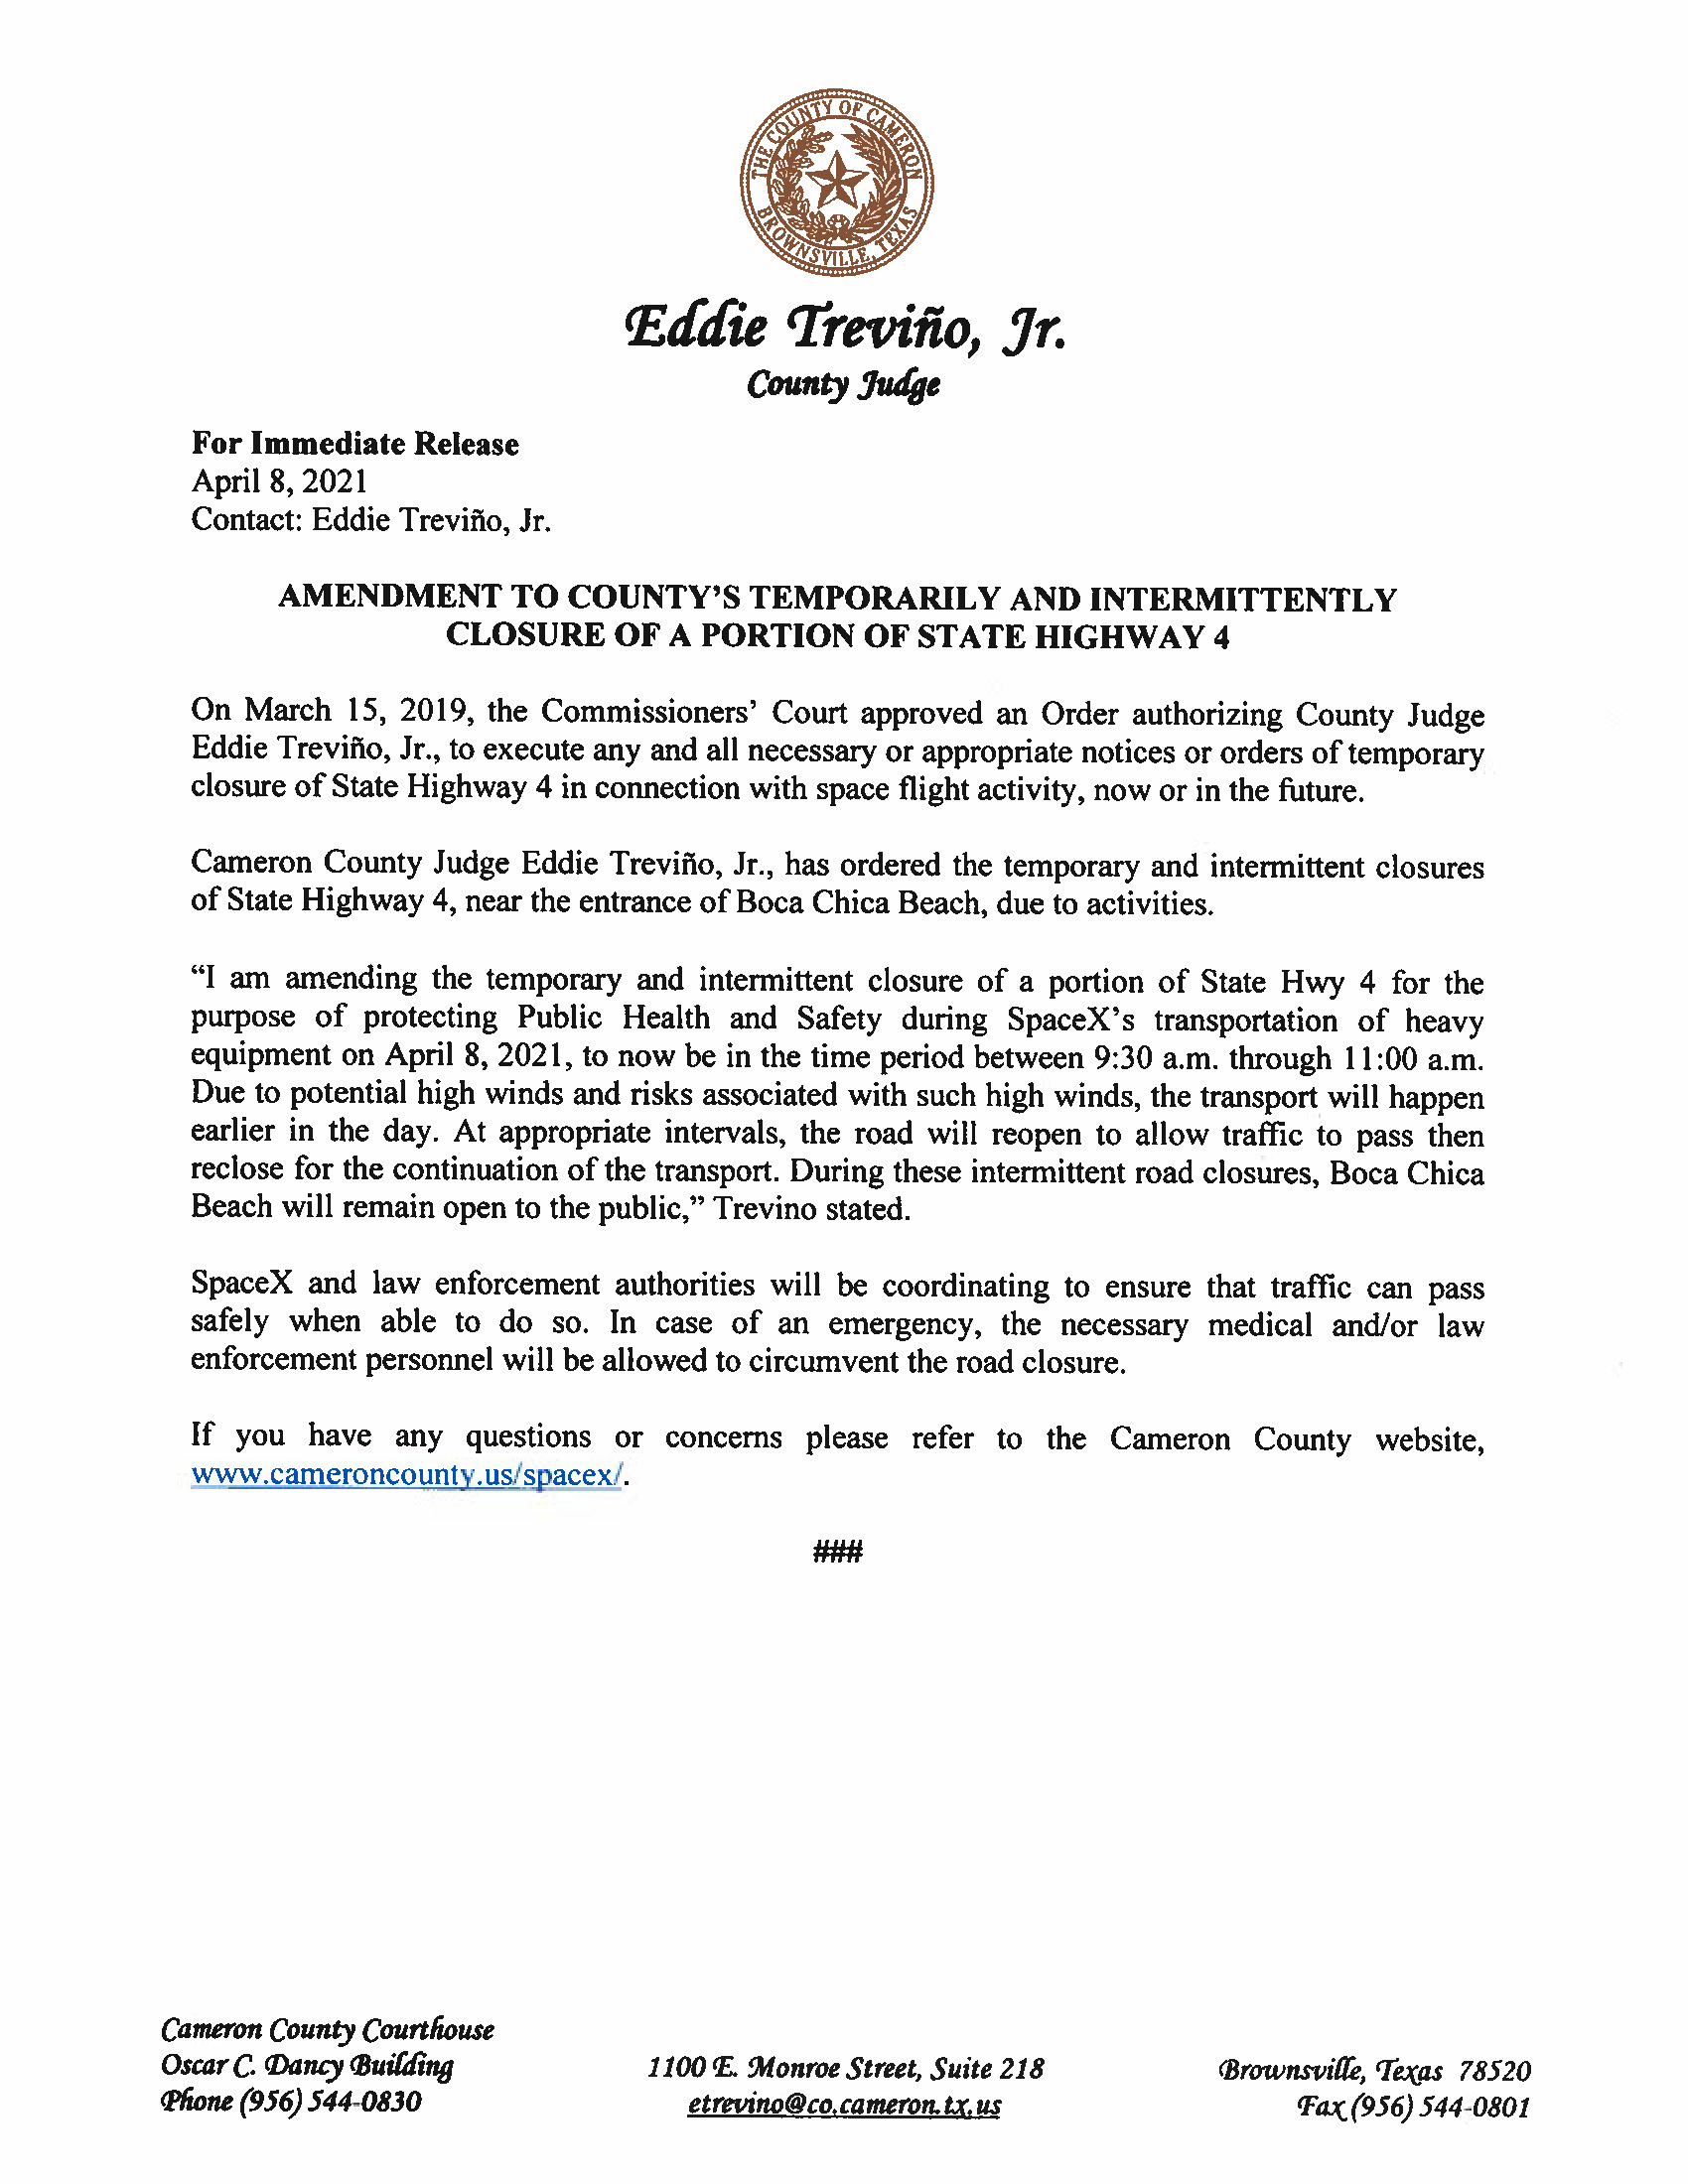 Amended Press Release In English And Spanish.04.08.2021 Page 1